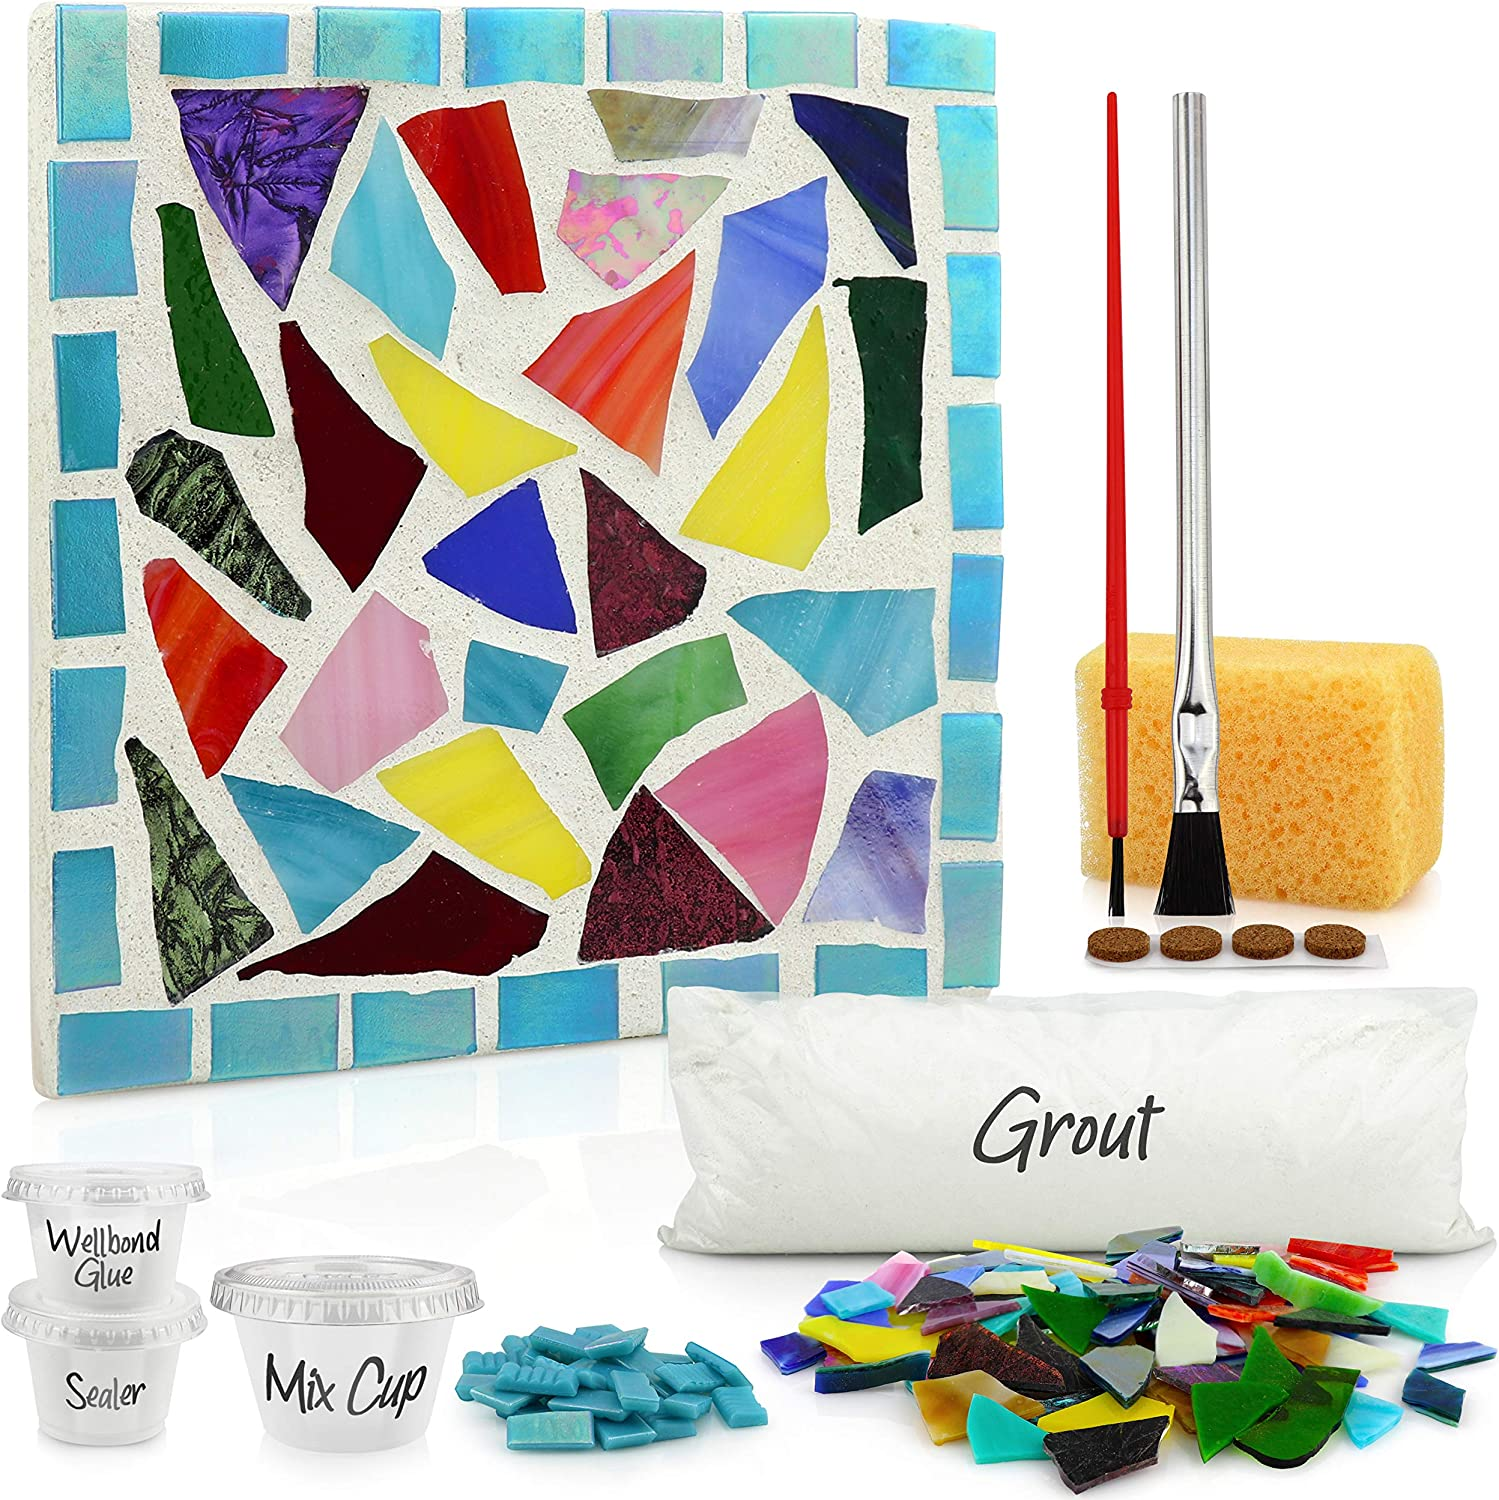 Mosaic Kits for Adults Stained Glass Trivet DIY Crafts for Adults DIY Kits  for Adults Mosaic Kit Art Kit